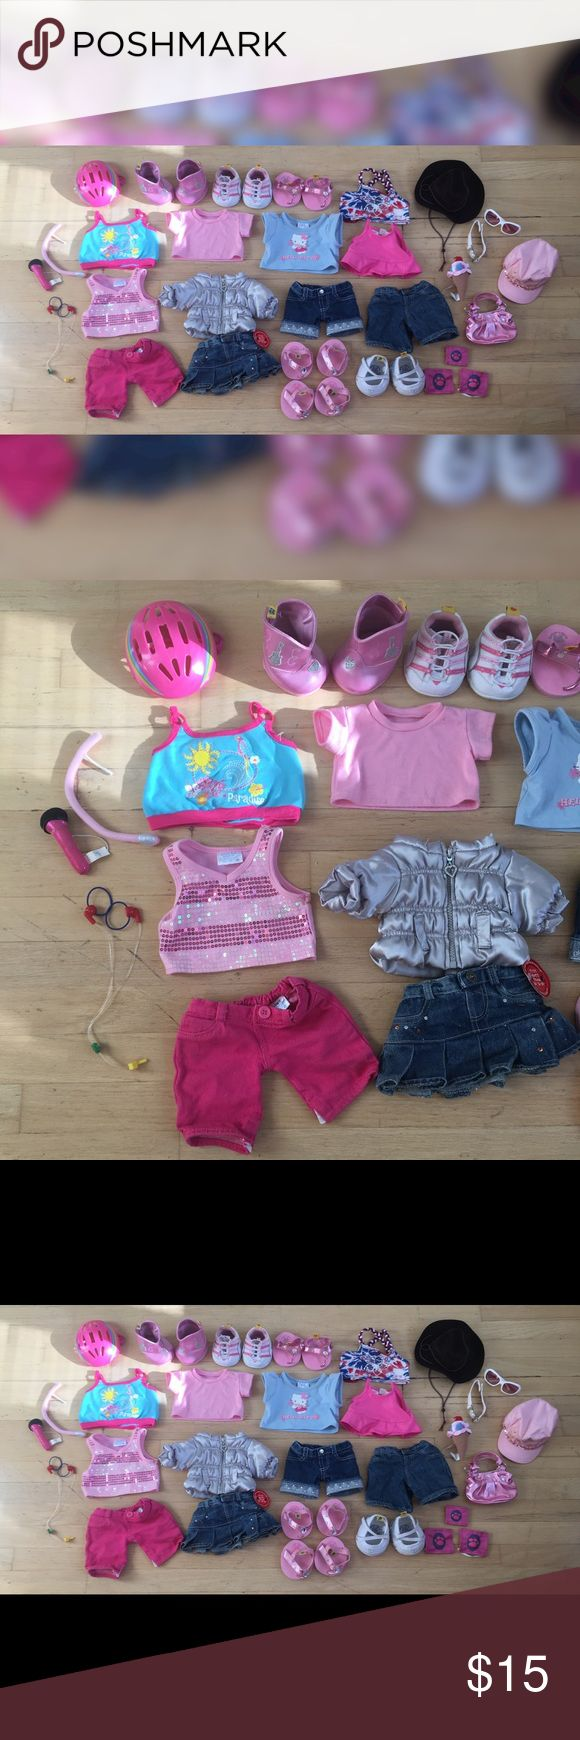 Build-A-Bear Clothes Every purchase comes with a FREE mystery item!! Shirts, pants, and shoes are $5 Accessories are $3 Buying multiple items will result in a discount! All items: $15 All items are in perfect condition! Build-A-Bear Other